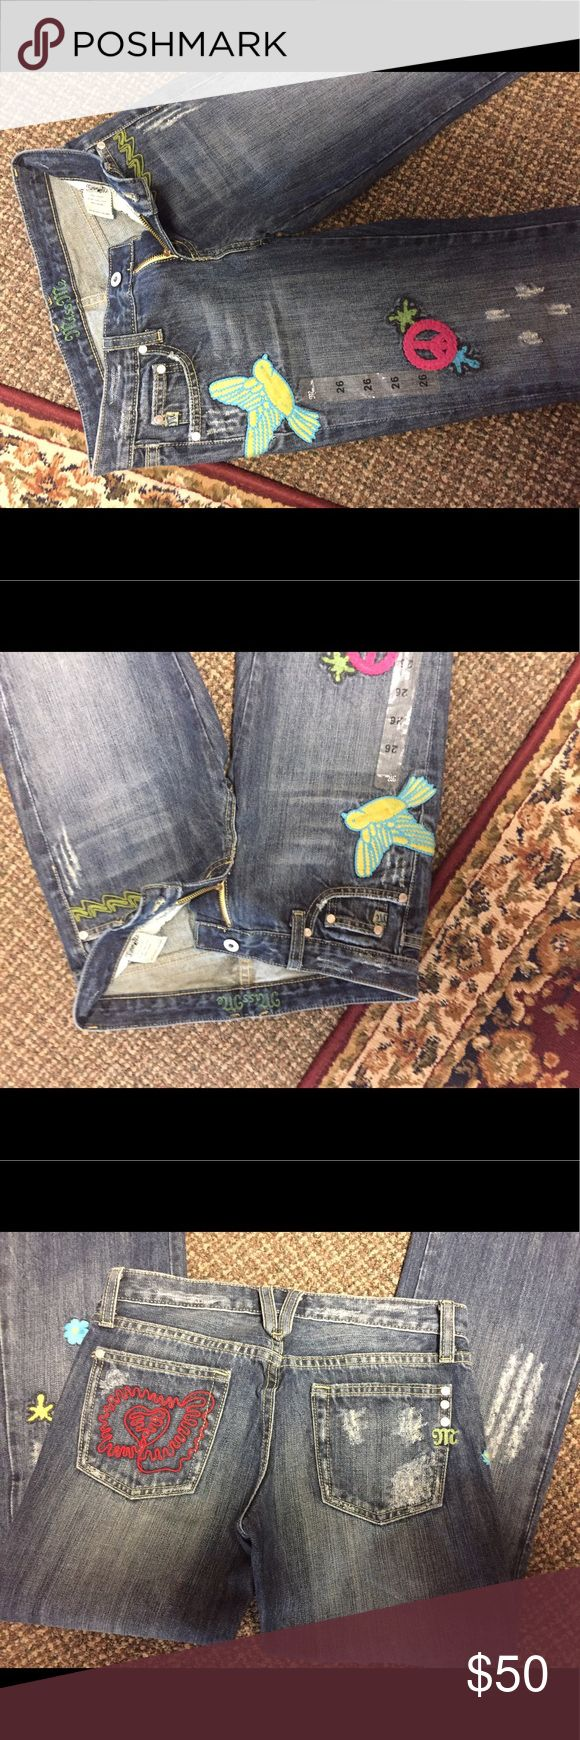 Miss Me brand new with tags sz 26 New Miss Me Jeans Boot Cut